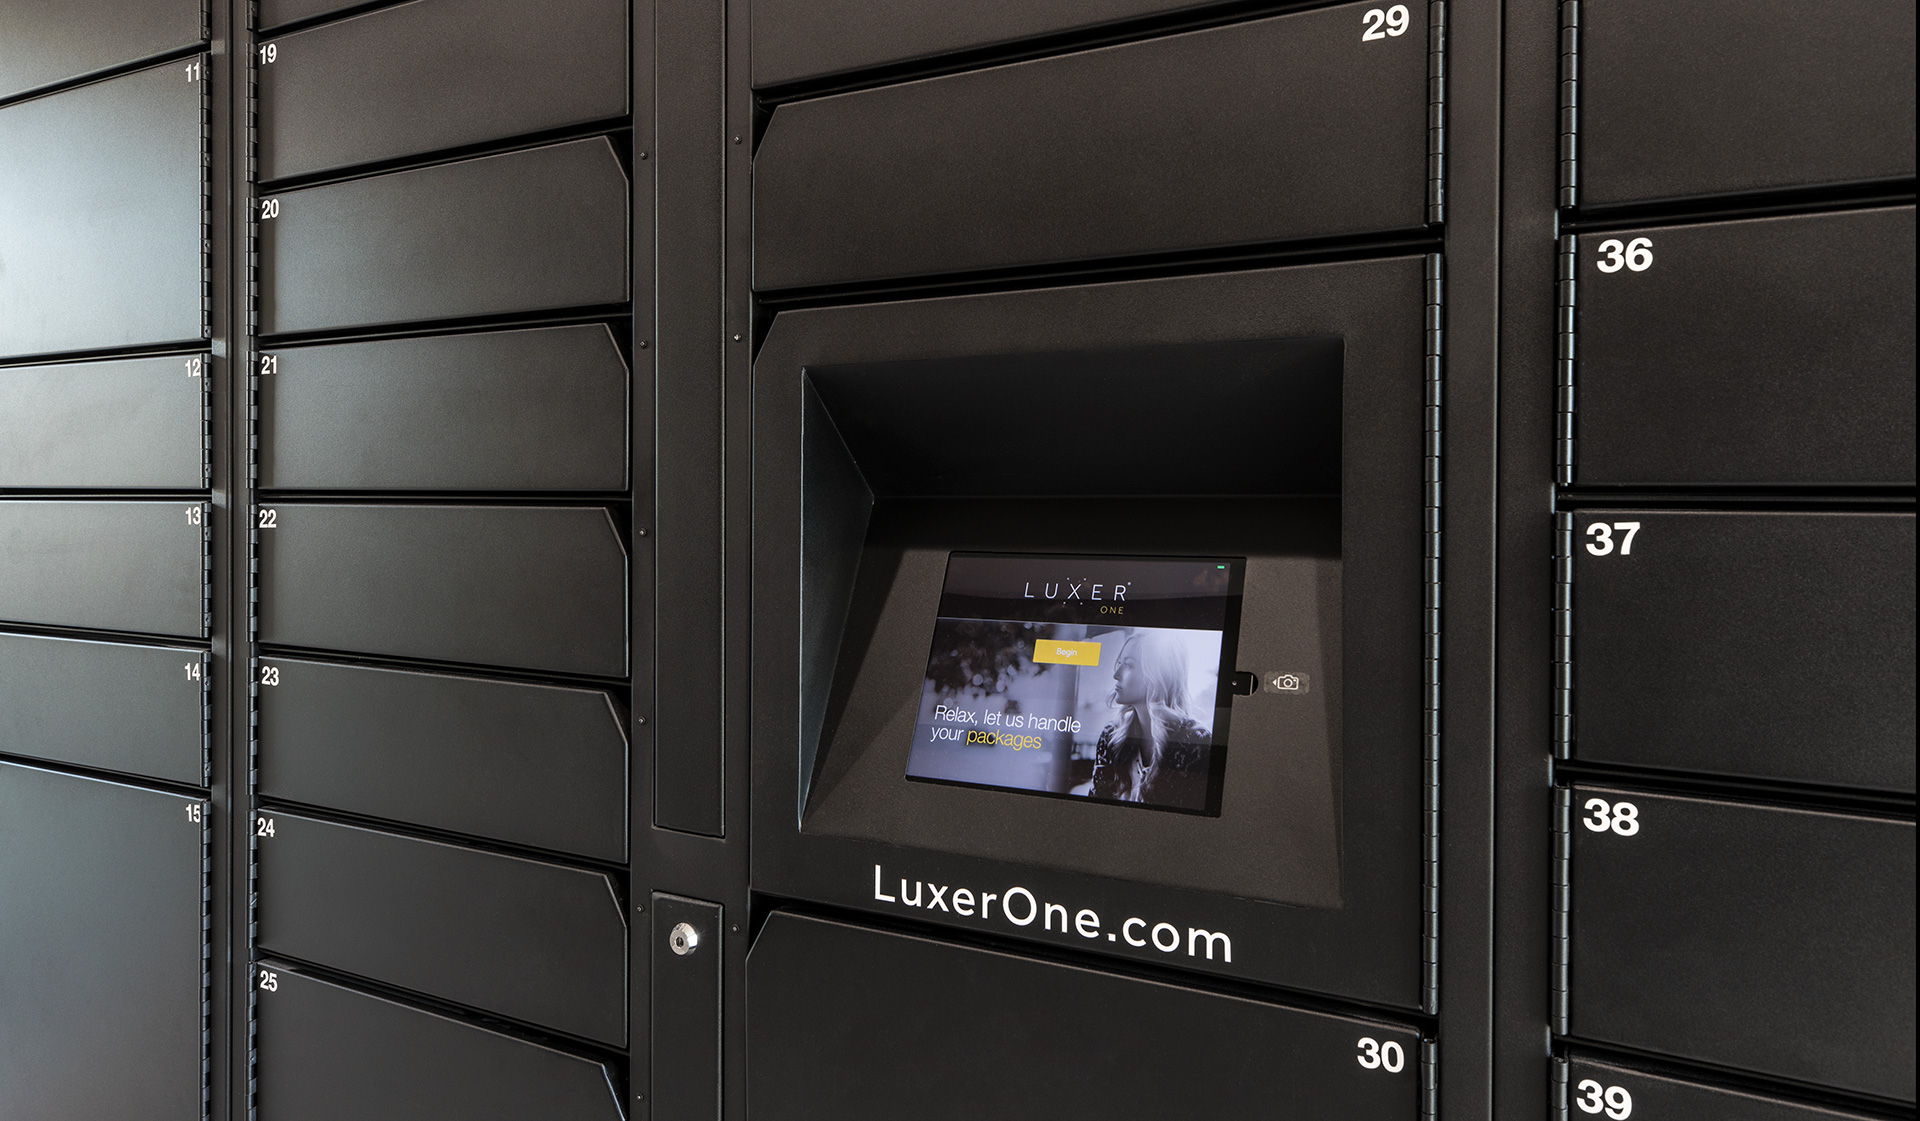 One Ardmore Place - Luxury Philadelphia Apartments - package lockers